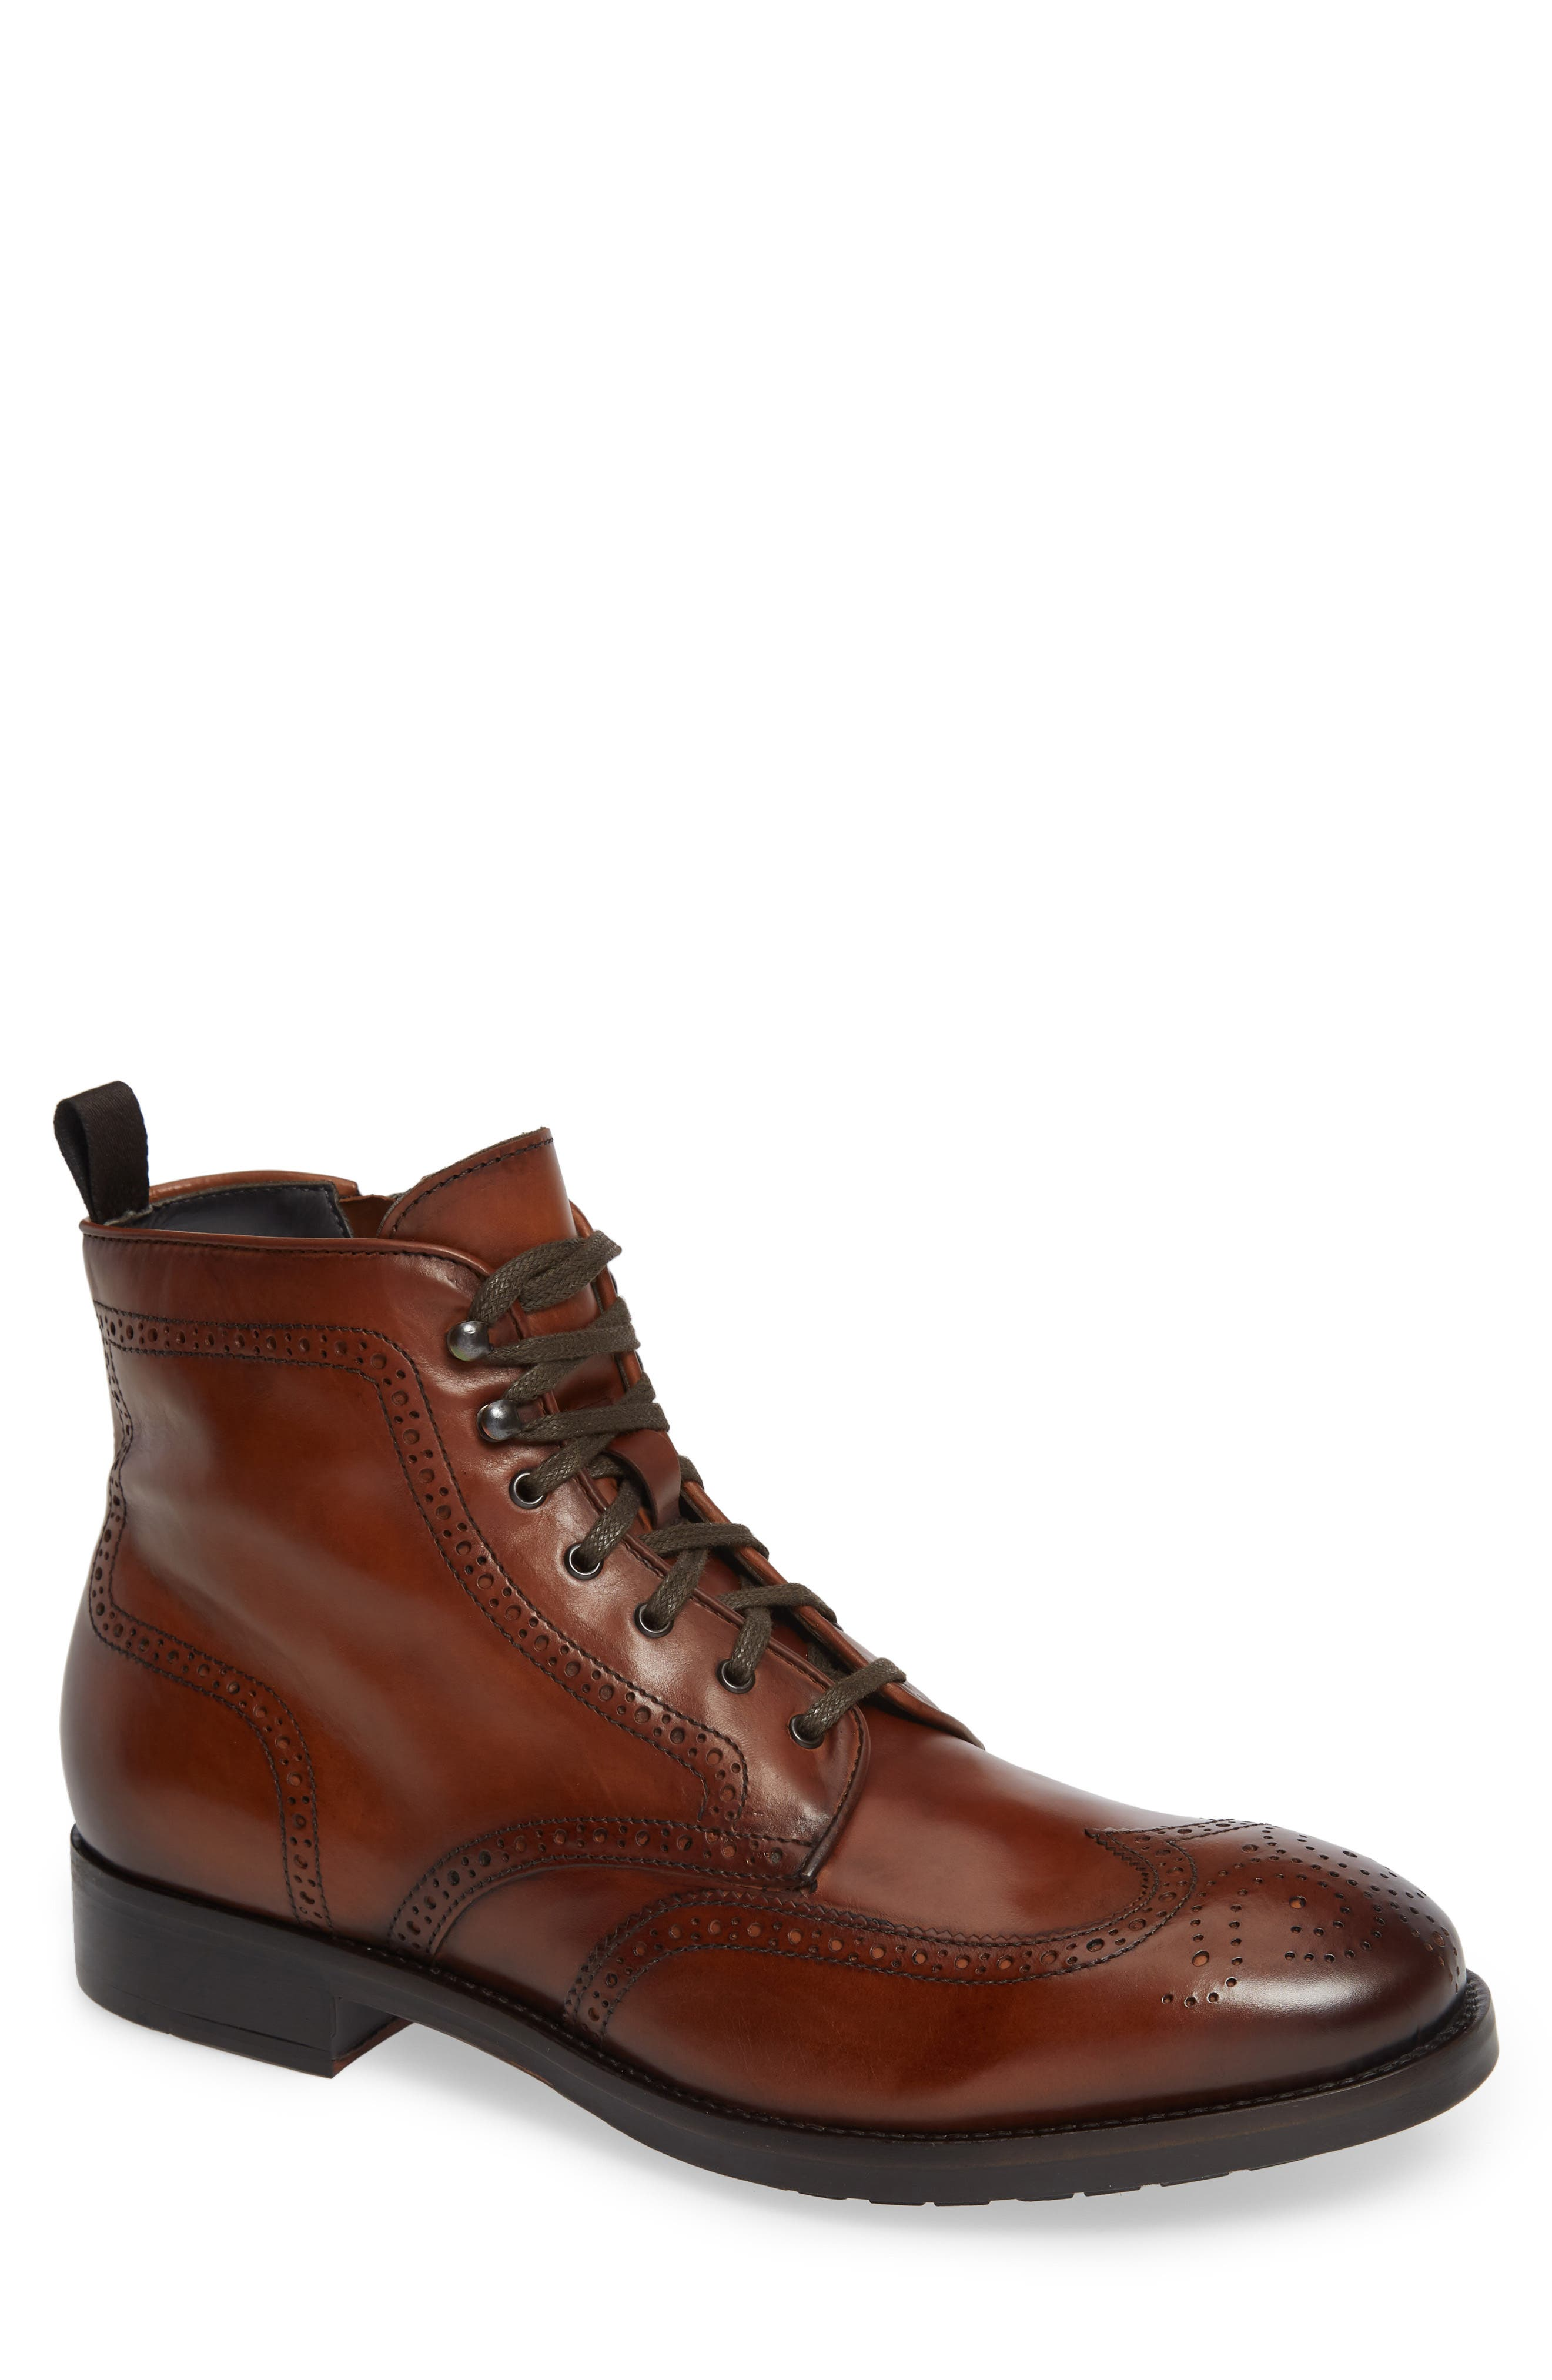 Auckland Wingtip Boot,                             Main thumbnail 1, color,                             BROWN LEATHER